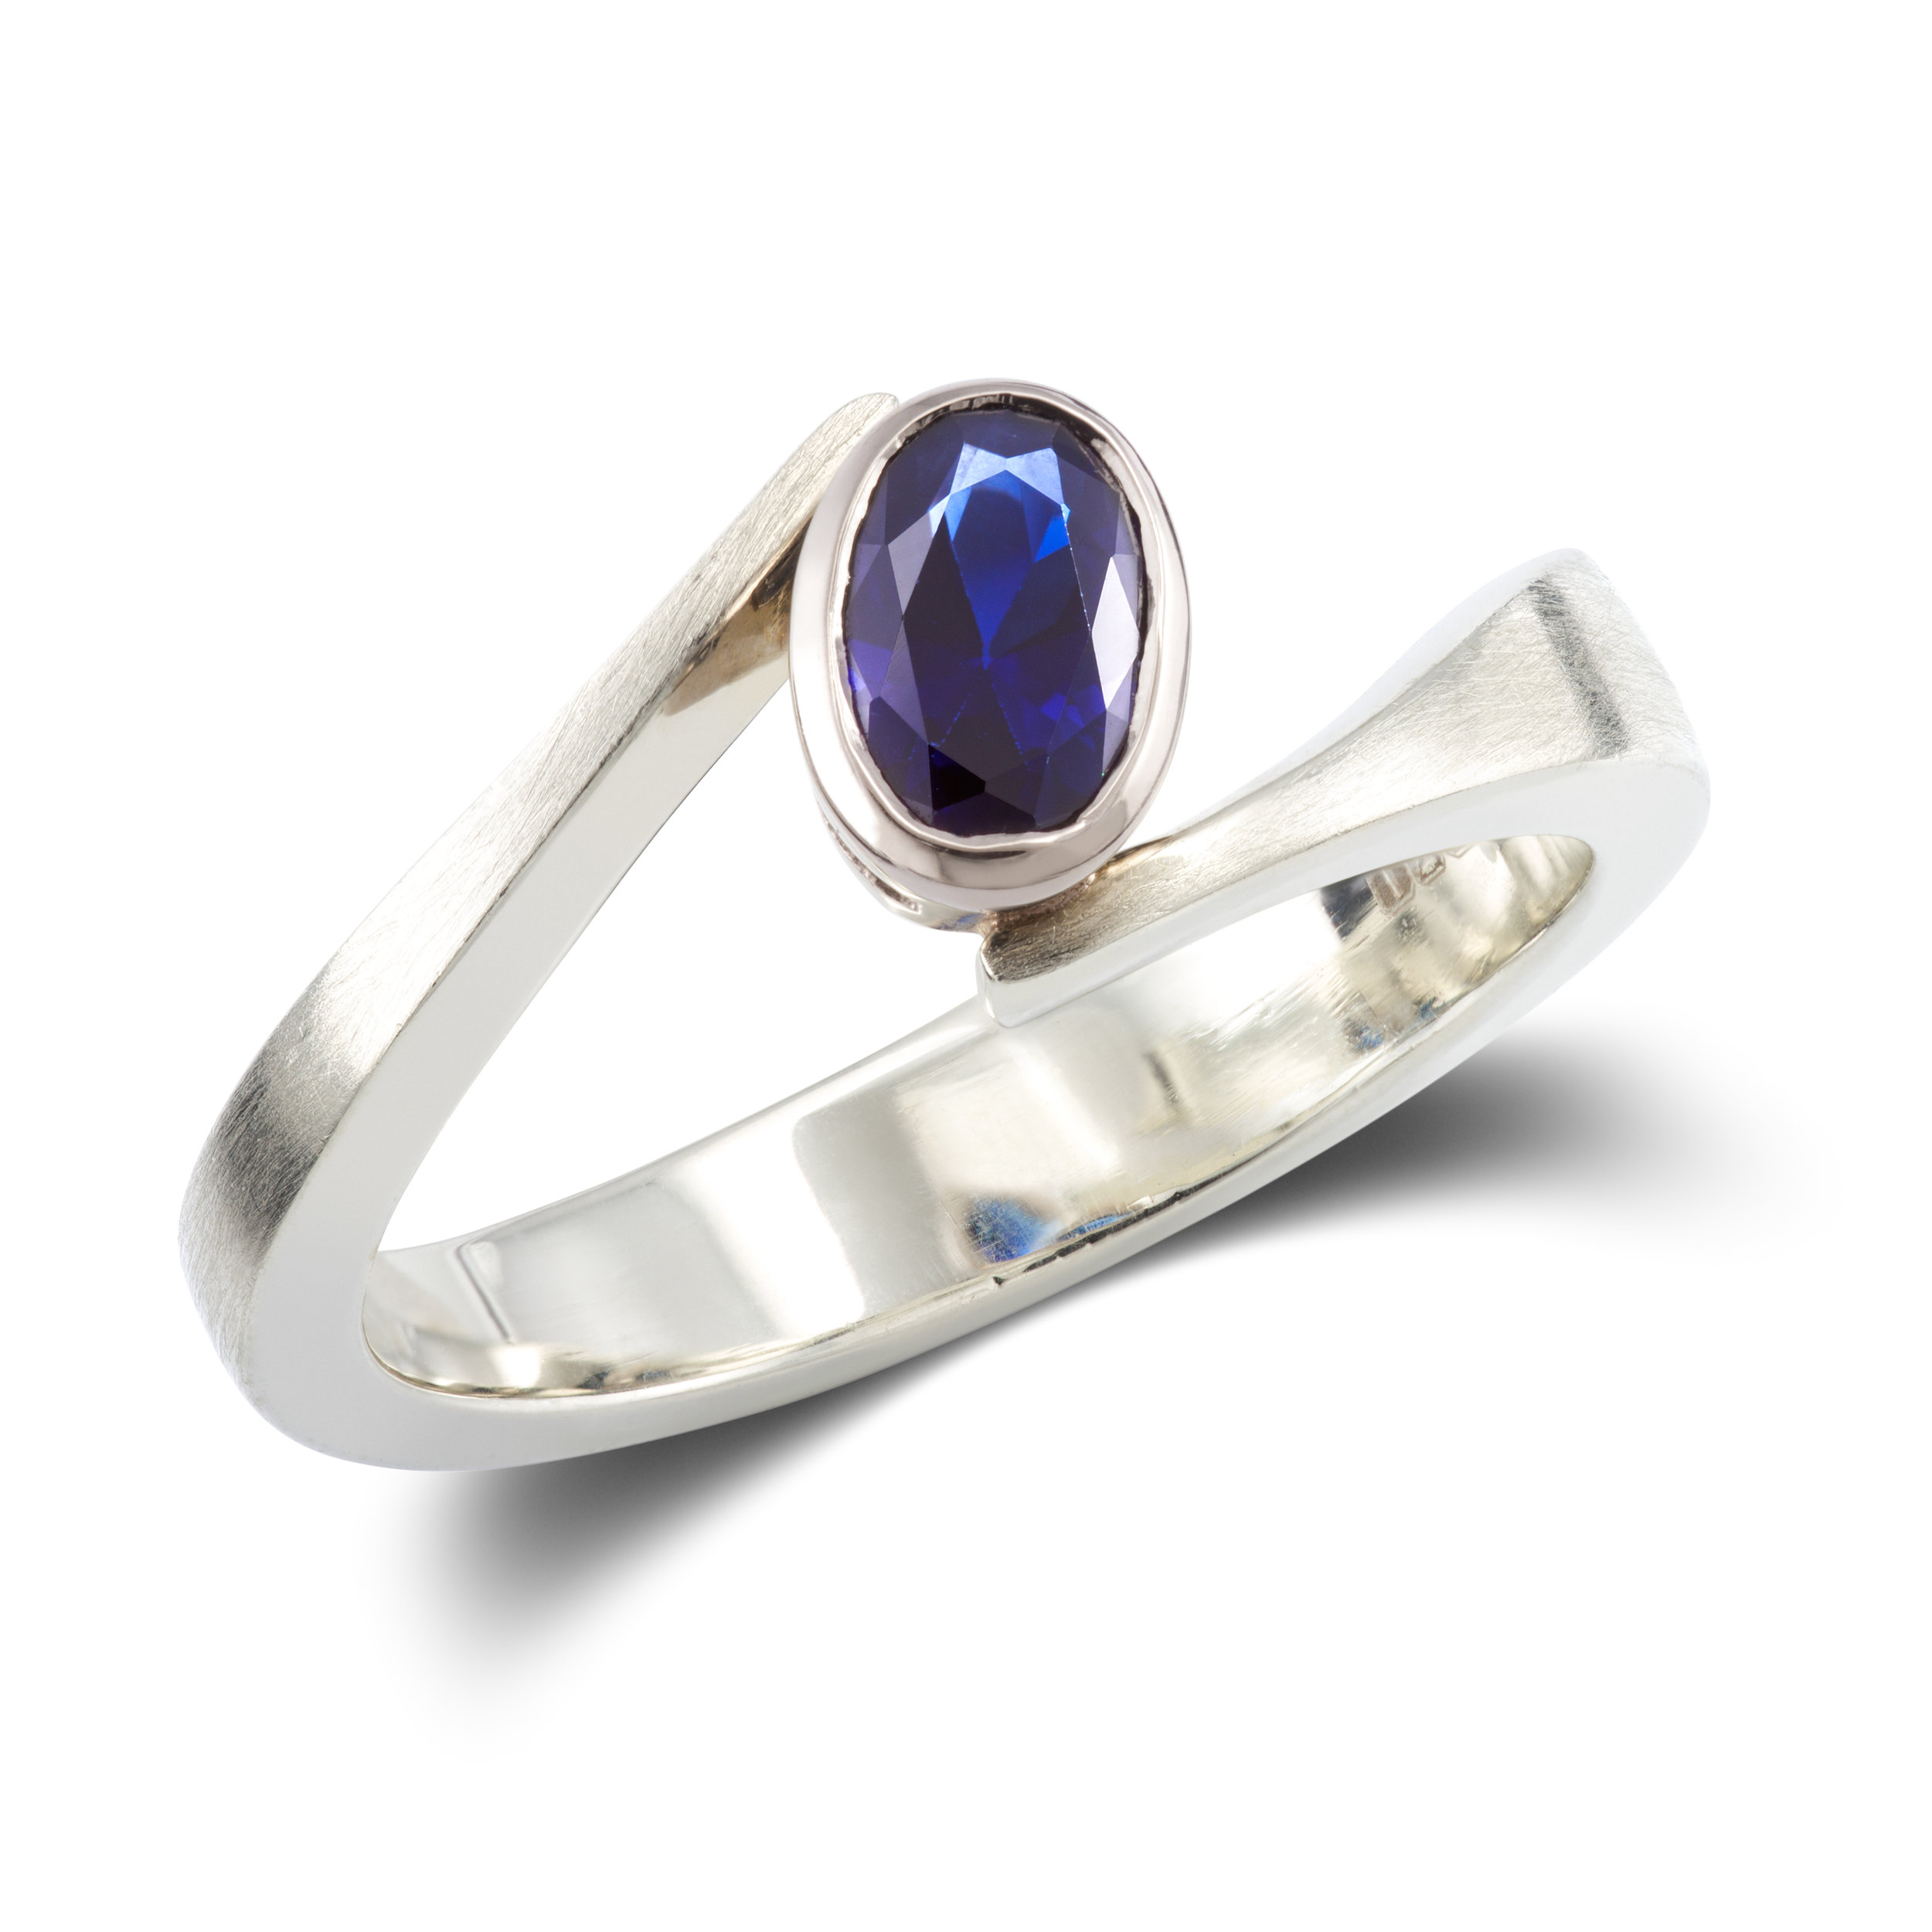 9ct white gold and lab created sapphire ring - £715